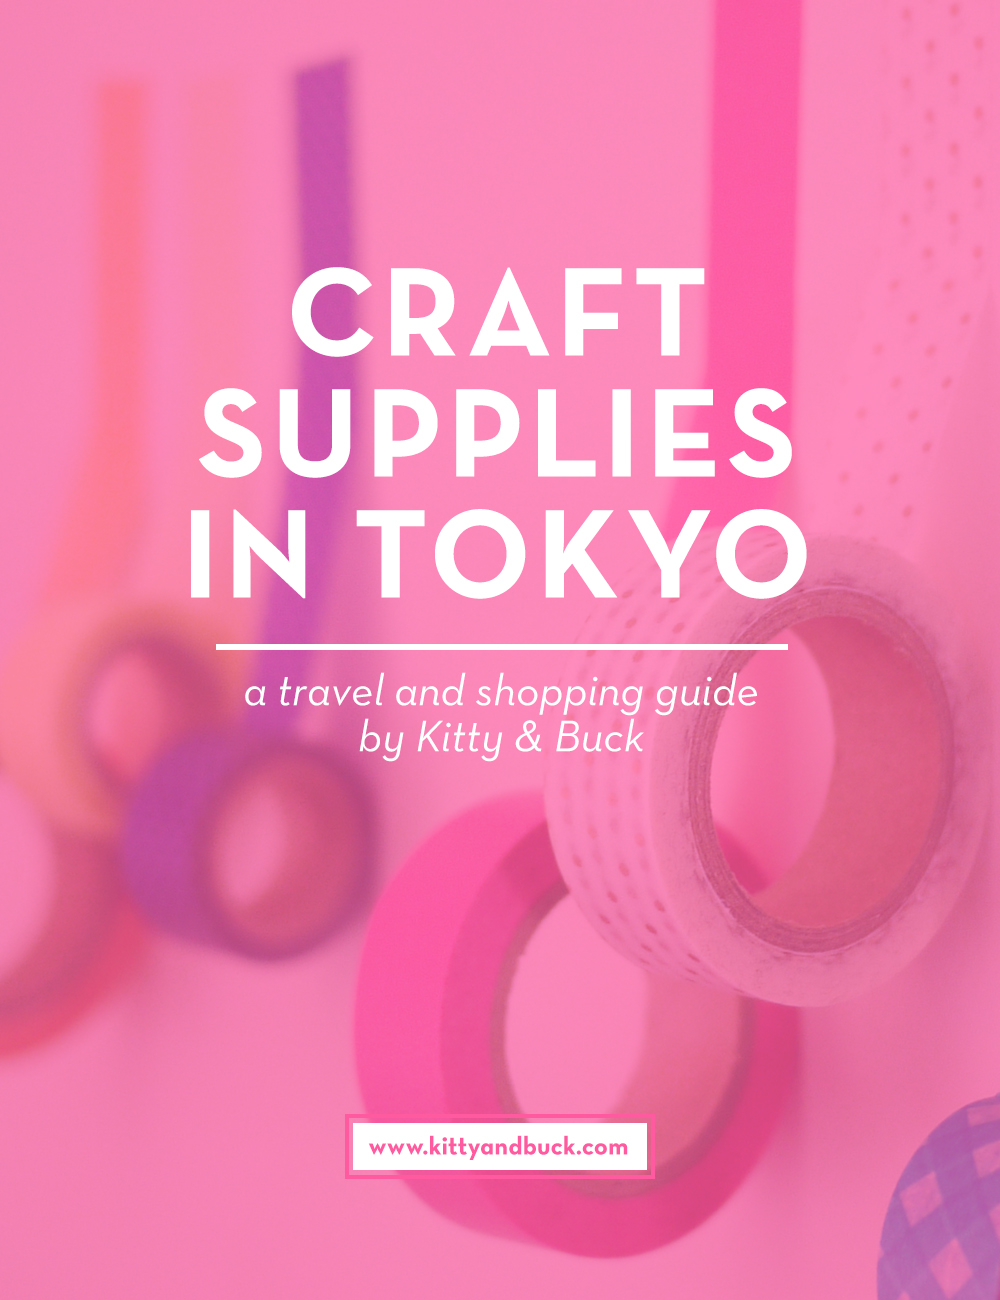 Craft Supplies in Tokyo! Trying to find your way around Tokyo's craft and art supply stores can be super challenging! Check out this guide on the best places to visit for craft, fabric and kawaii stationery supplies with insider tips,addresses, and directions to make your next crafty visit to Tokyo hassle free and fun! | by Kitty & Buck